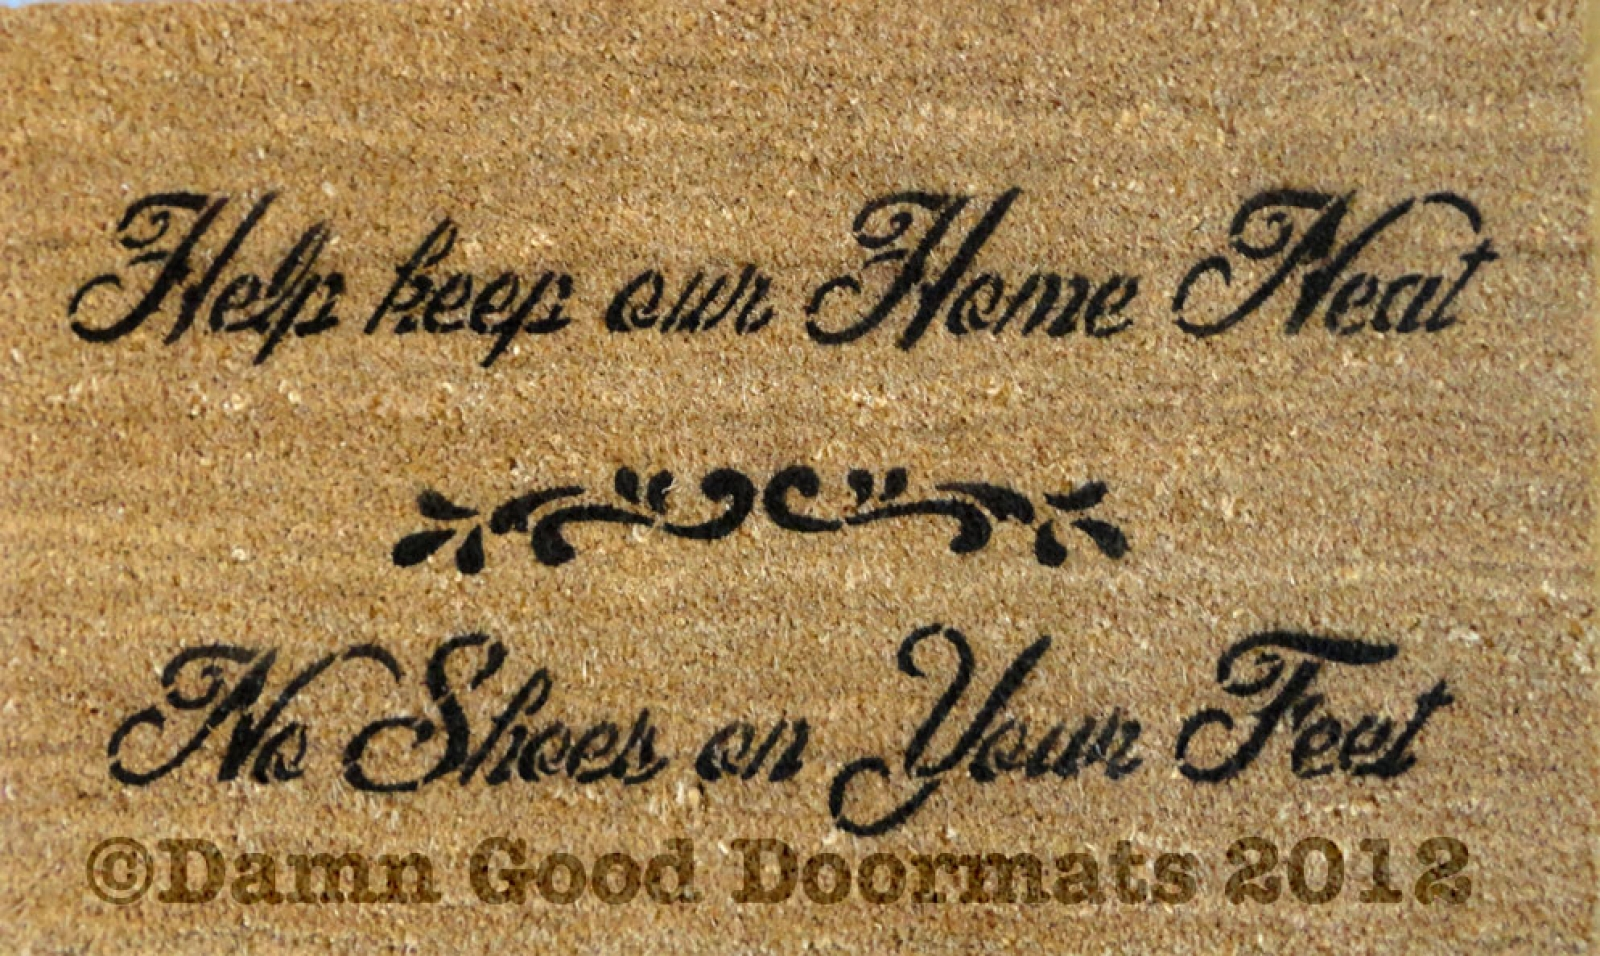 Help keep our home neat, no shoes on your feet | Damn Good Doormats